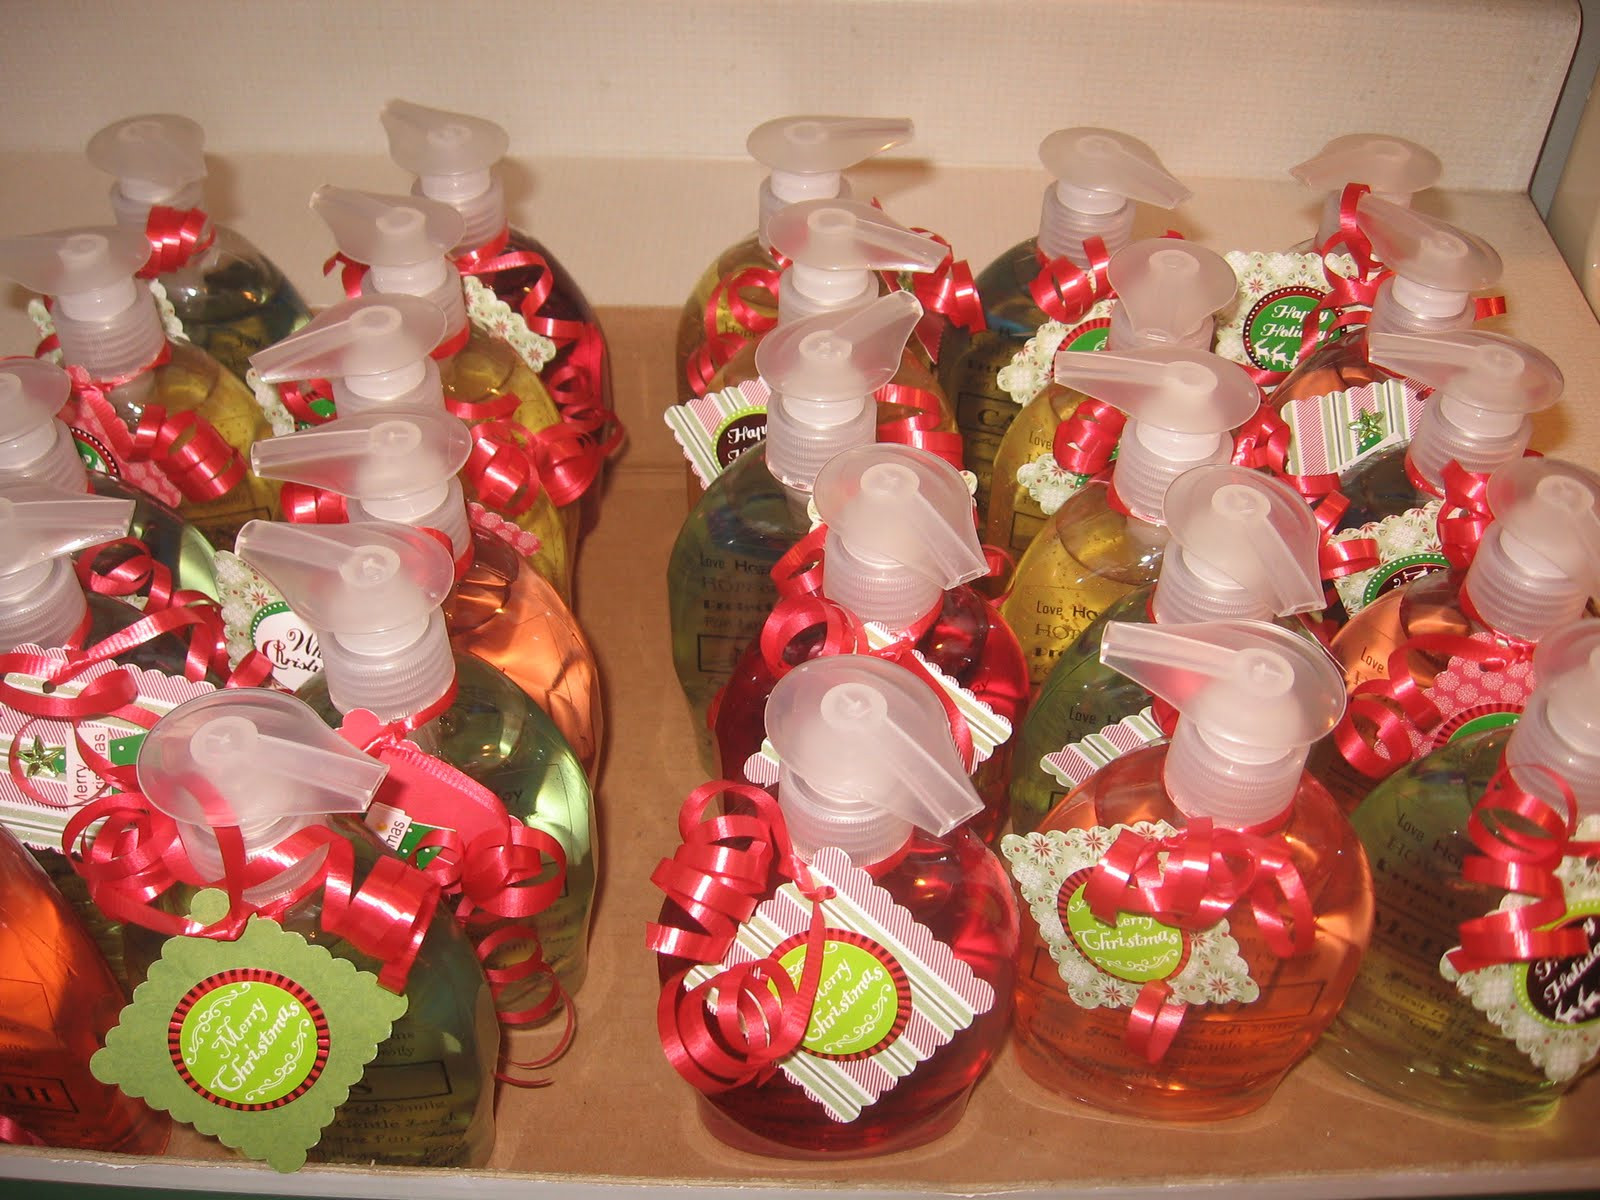 Best ideas about Coworker Gift Ideas . Save or Pin Dandelions and Dust Bunnies Co worker Neighbor Gift Idea Now.